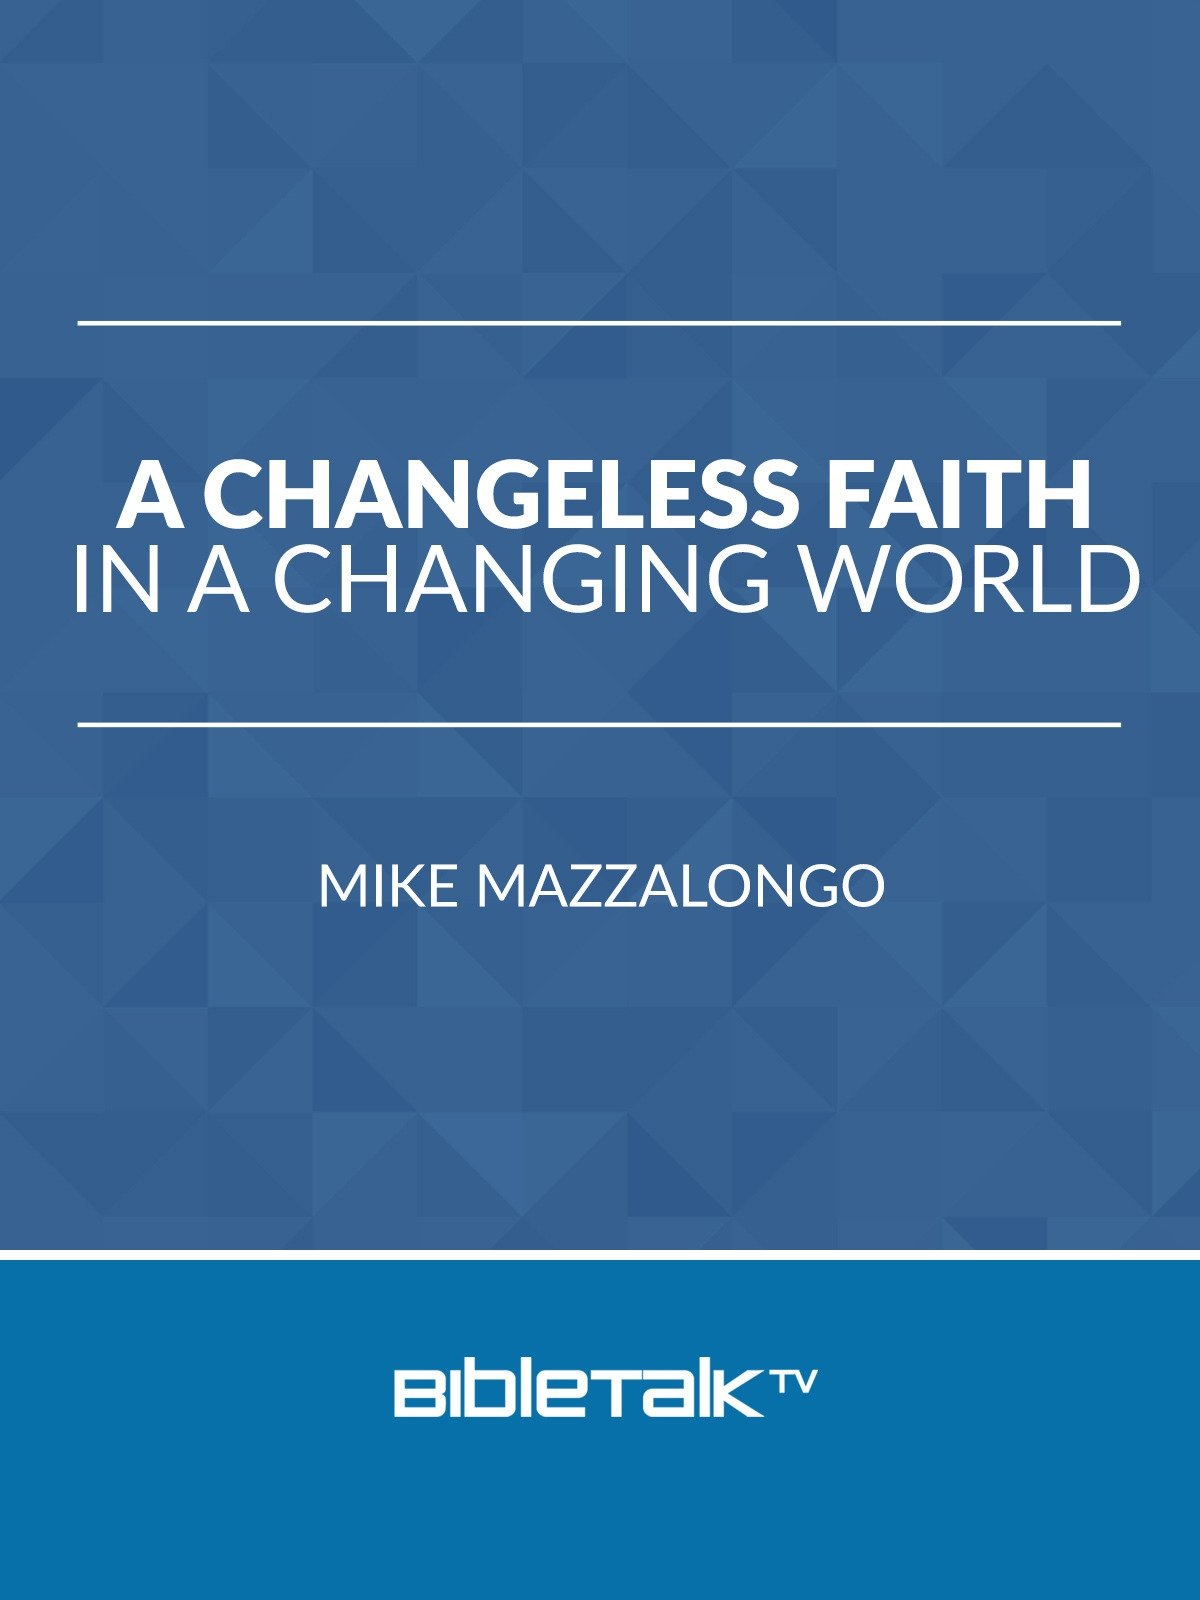 A Changeless Faith in a Changing World